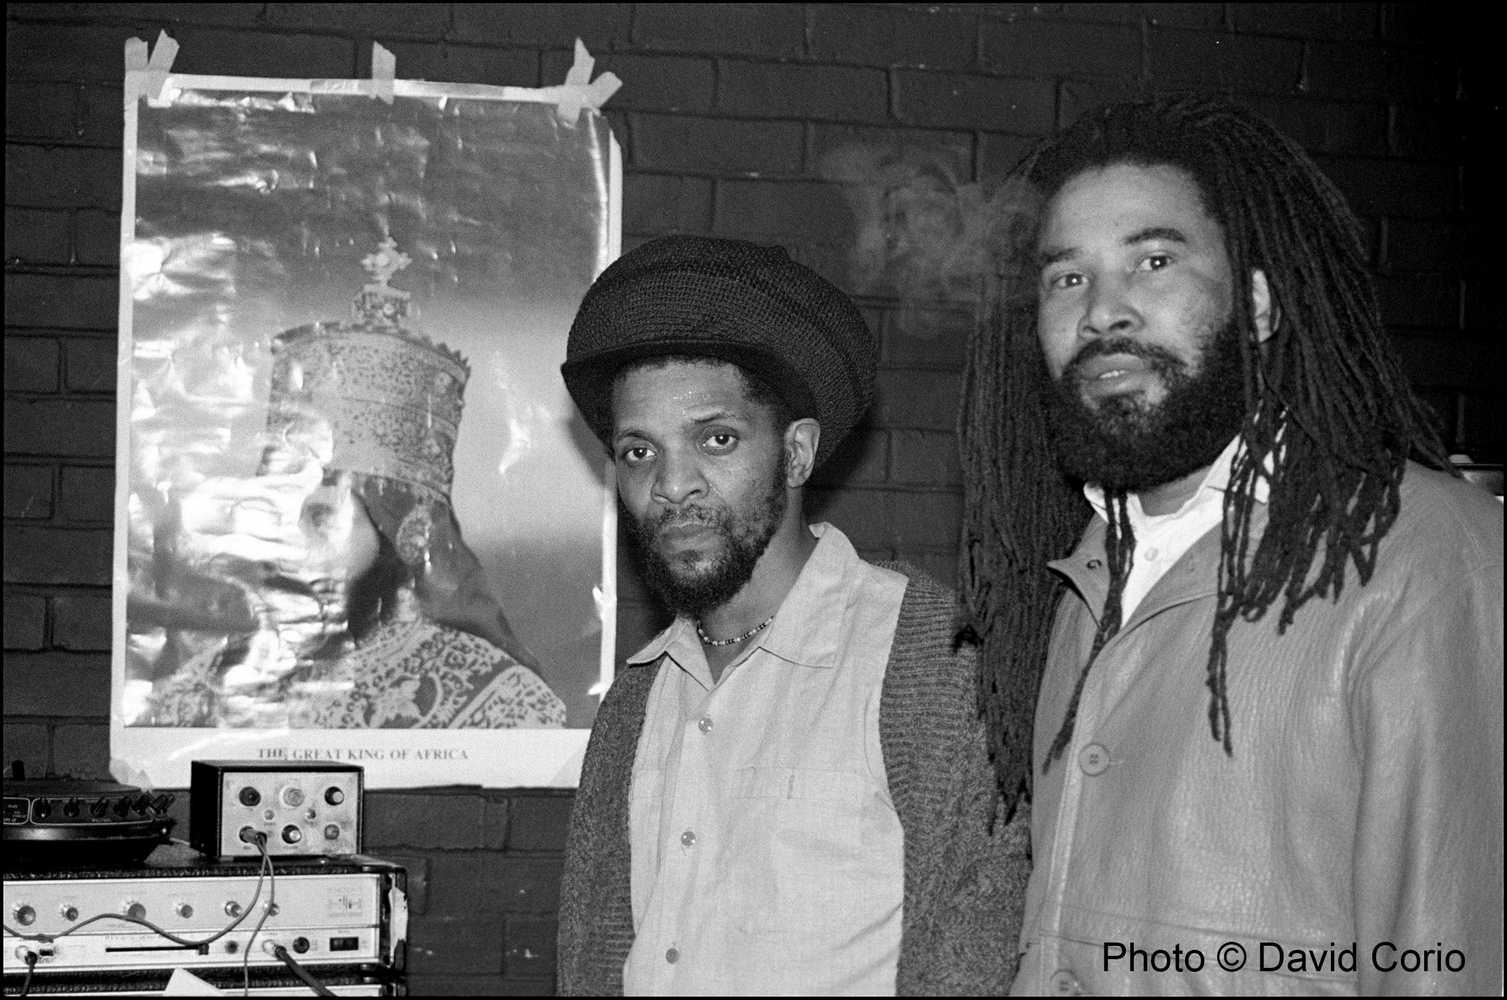 Jah Shaka & Norman Grant of The Twinkle Brothers at Albany Empire, Deptford, London, UK February 7 1988 by David Corio